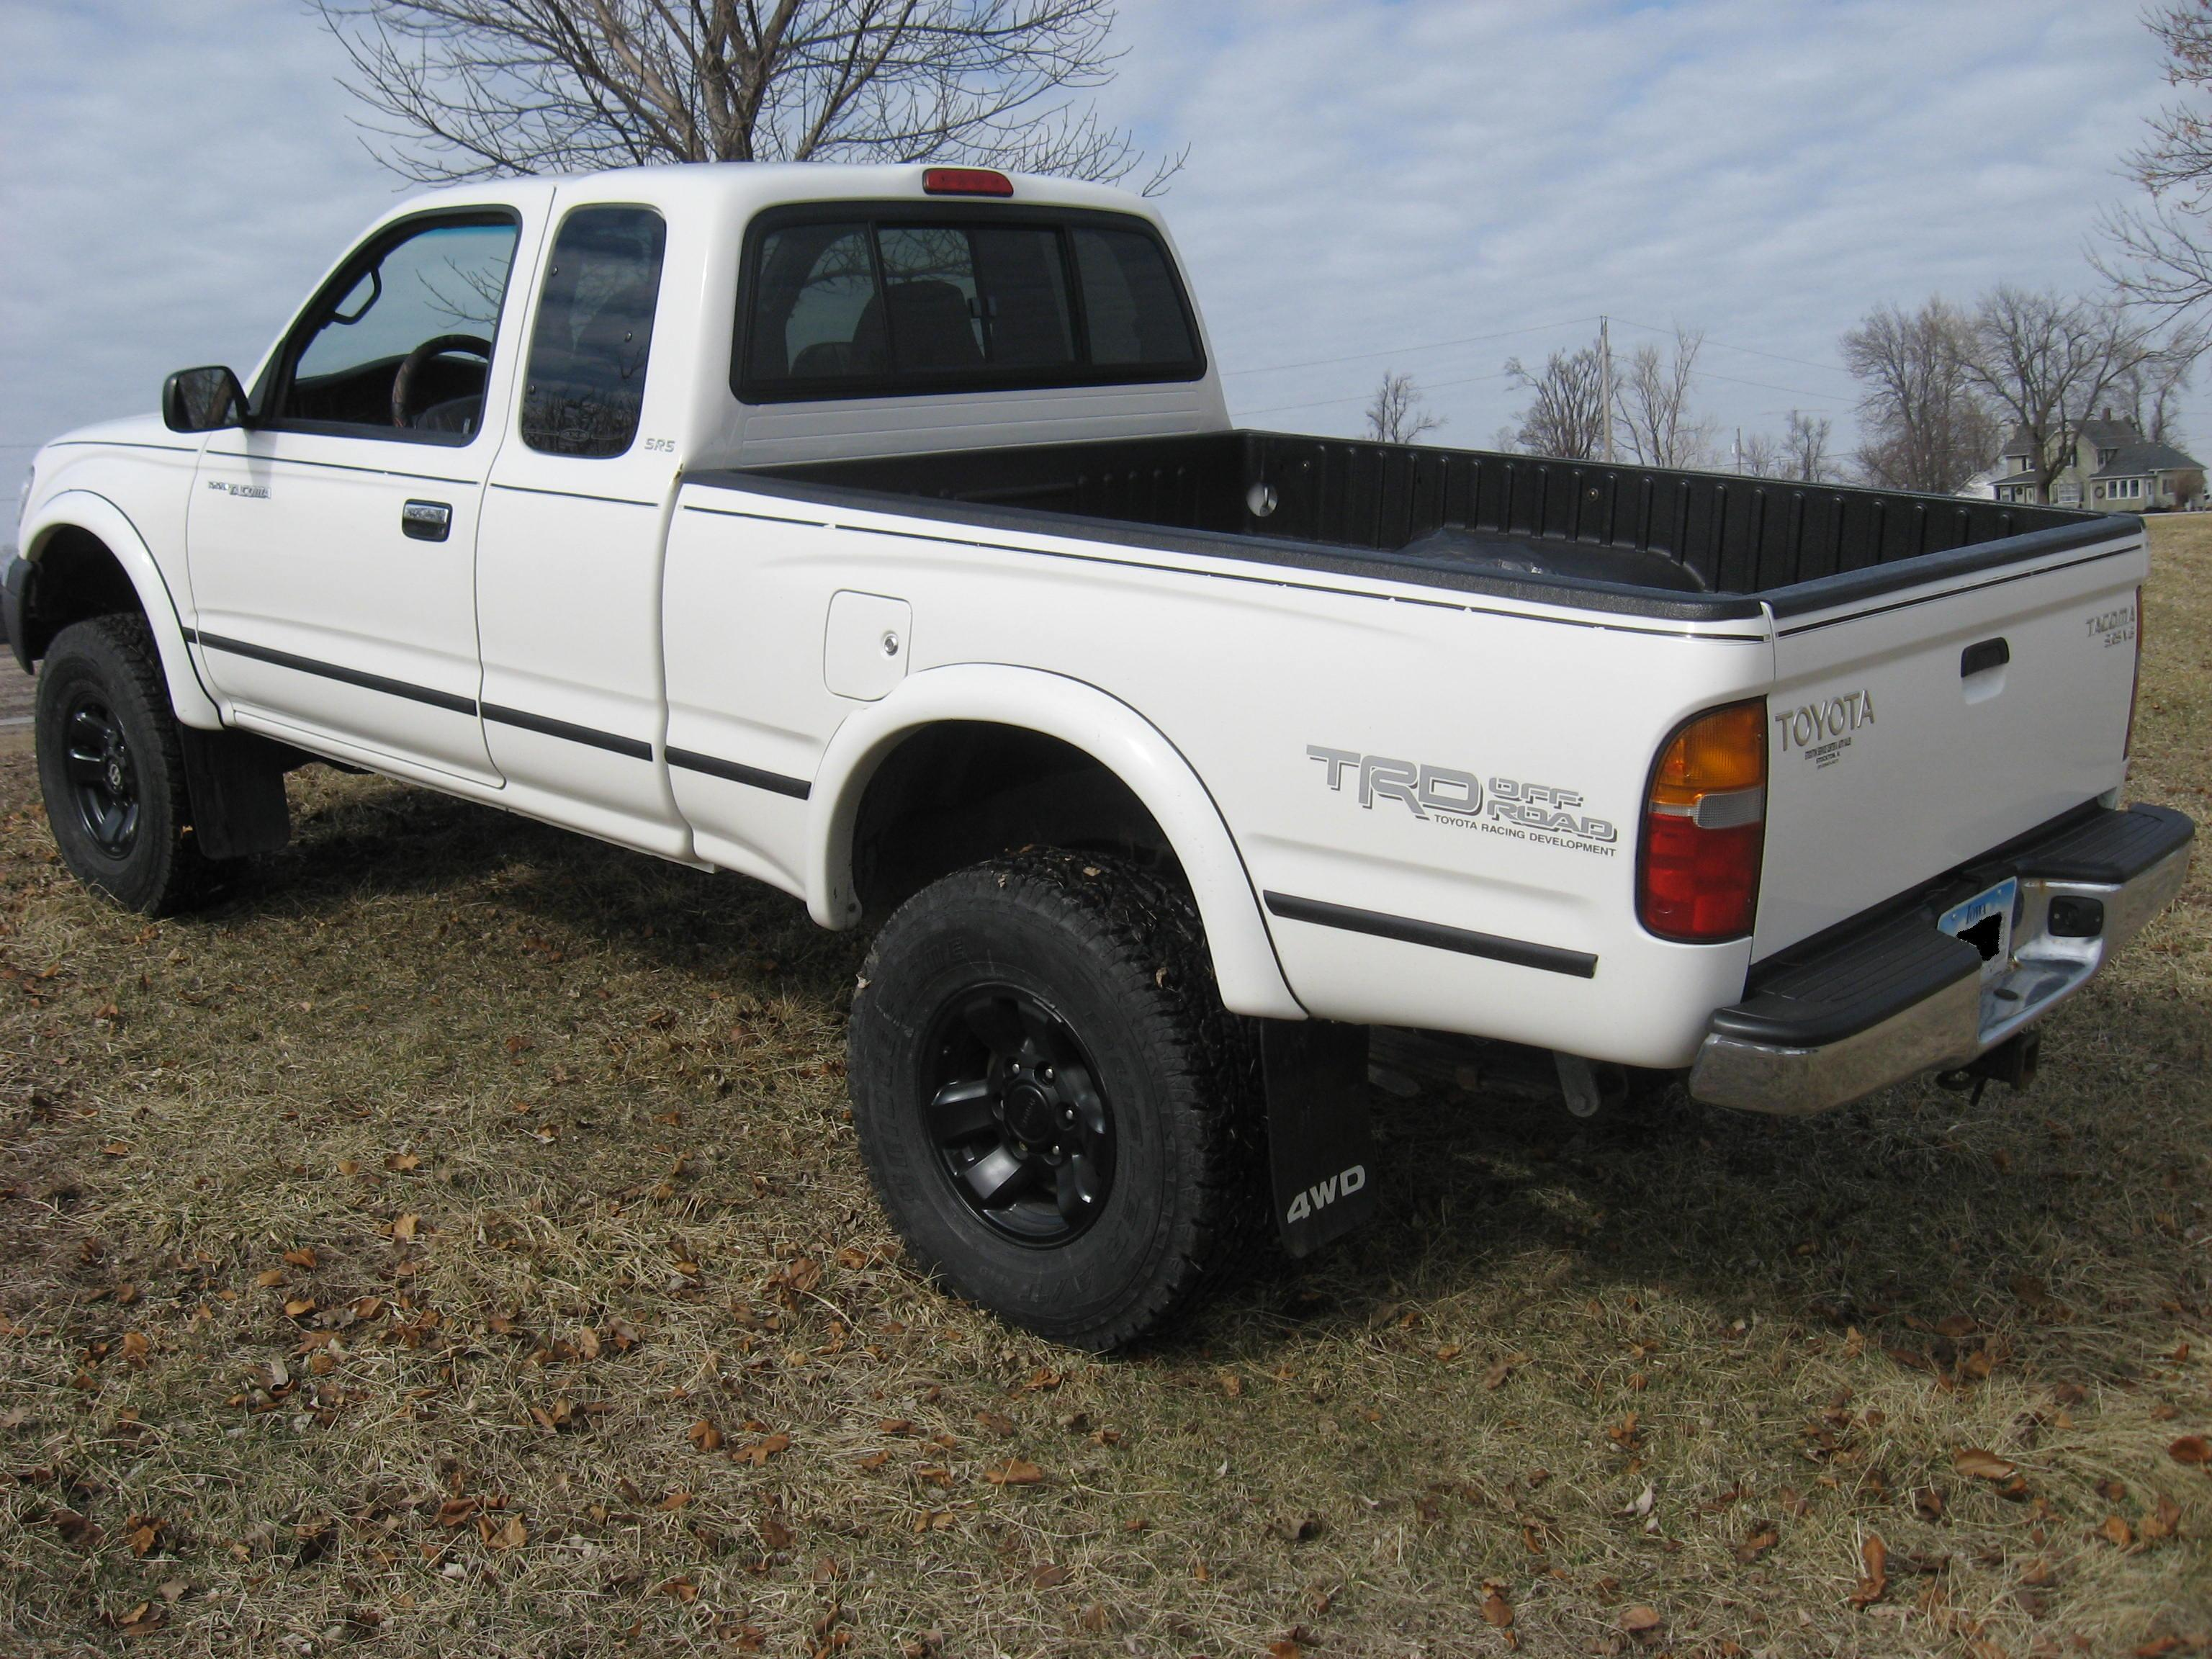 kevbo 99 39 s 1999 toyota tacoma xtra cab in ottumwa ia. Black Bedroom Furniture Sets. Home Design Ideas